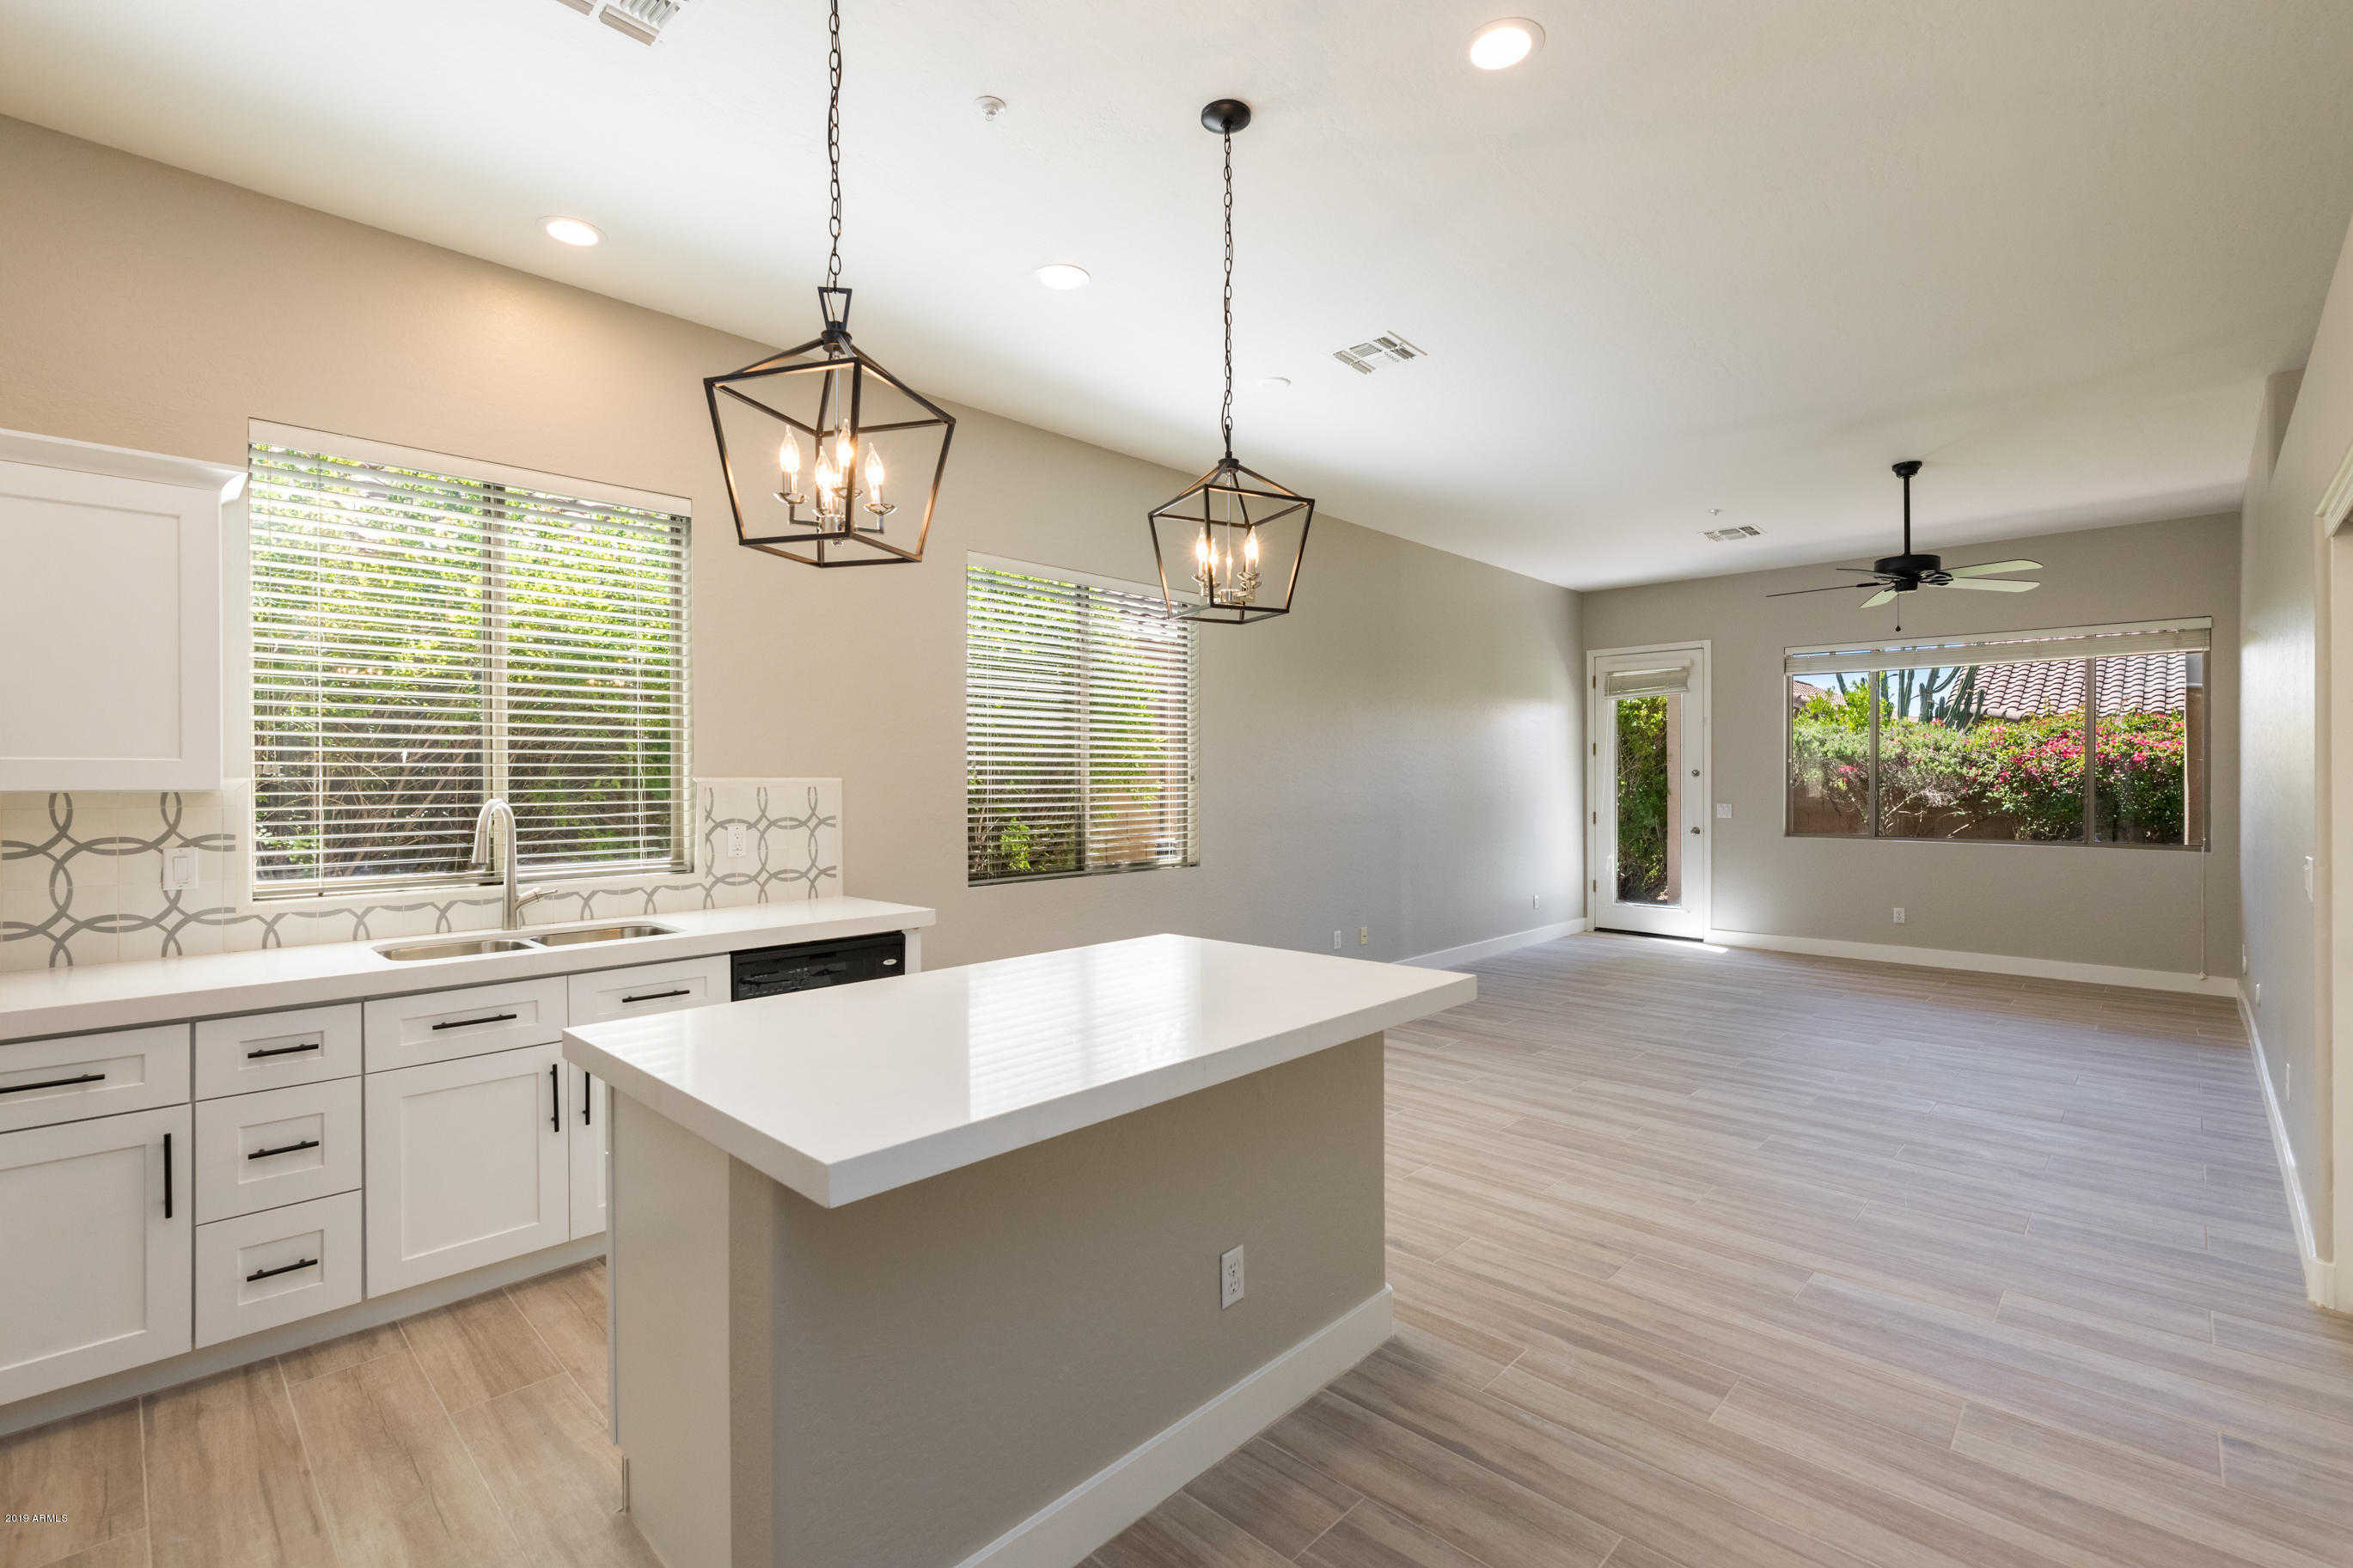 Homes For Sale In Mcdowell Mountain Ranch Patty Bryant